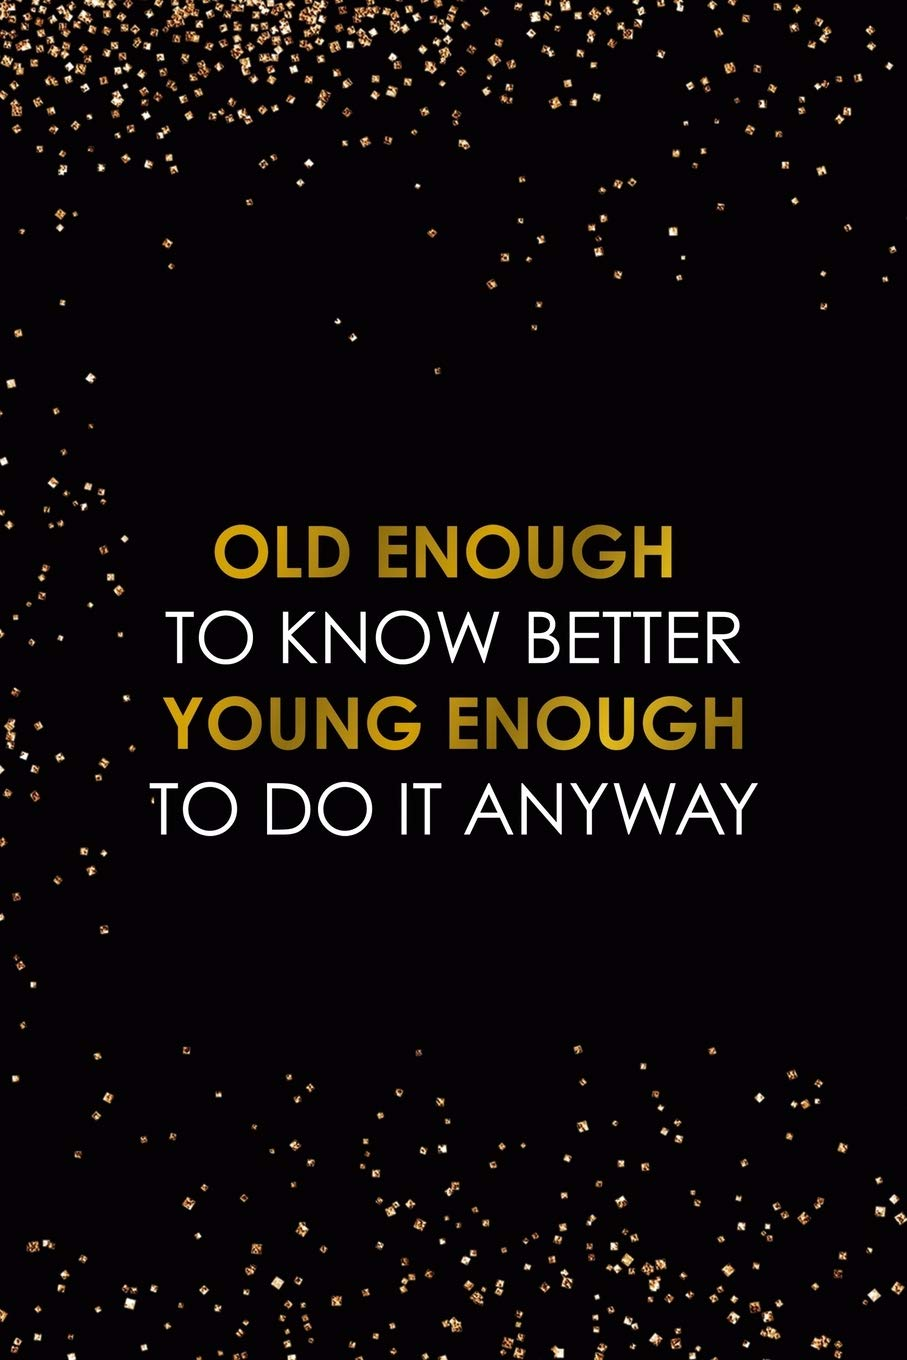 Old Enough To Know Better Young Enough To Do It Anyway: Adultescent Notebook Journal Composition Blank Lined Diary Notepad 120 Pages Paperback Black Dust Gold